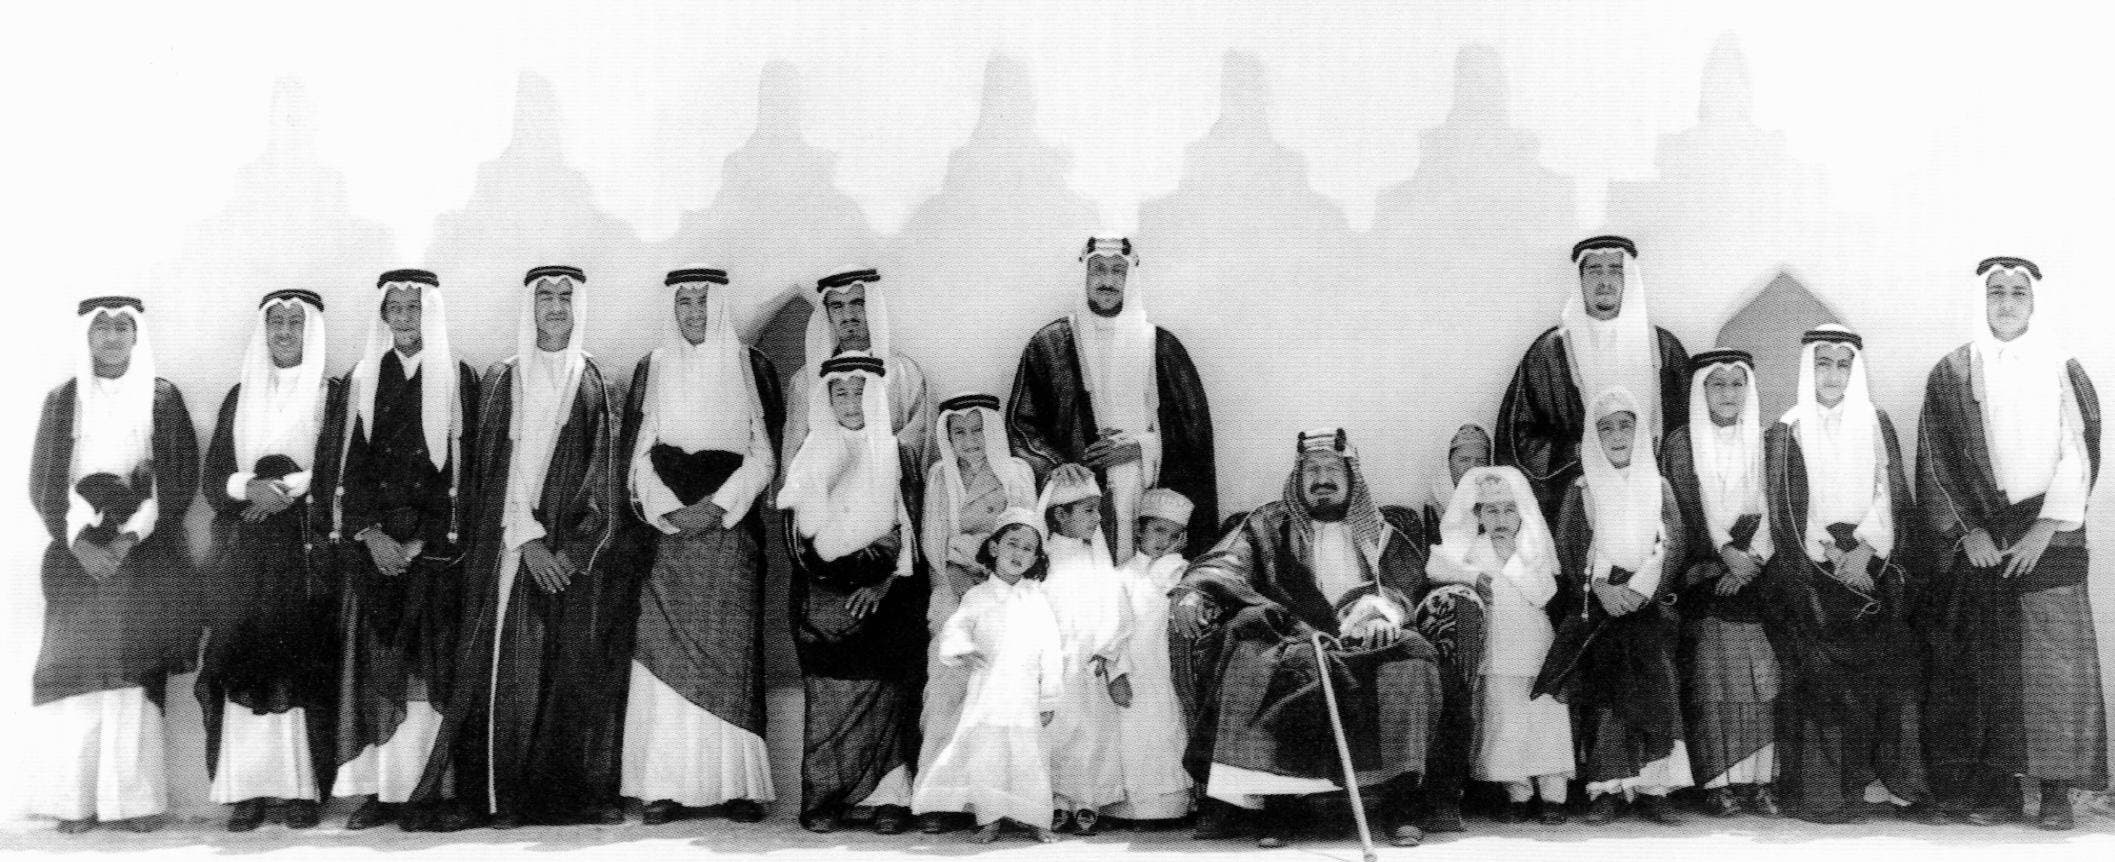 260 rare photographs of Saudi Arabia's founding King can be found in this place